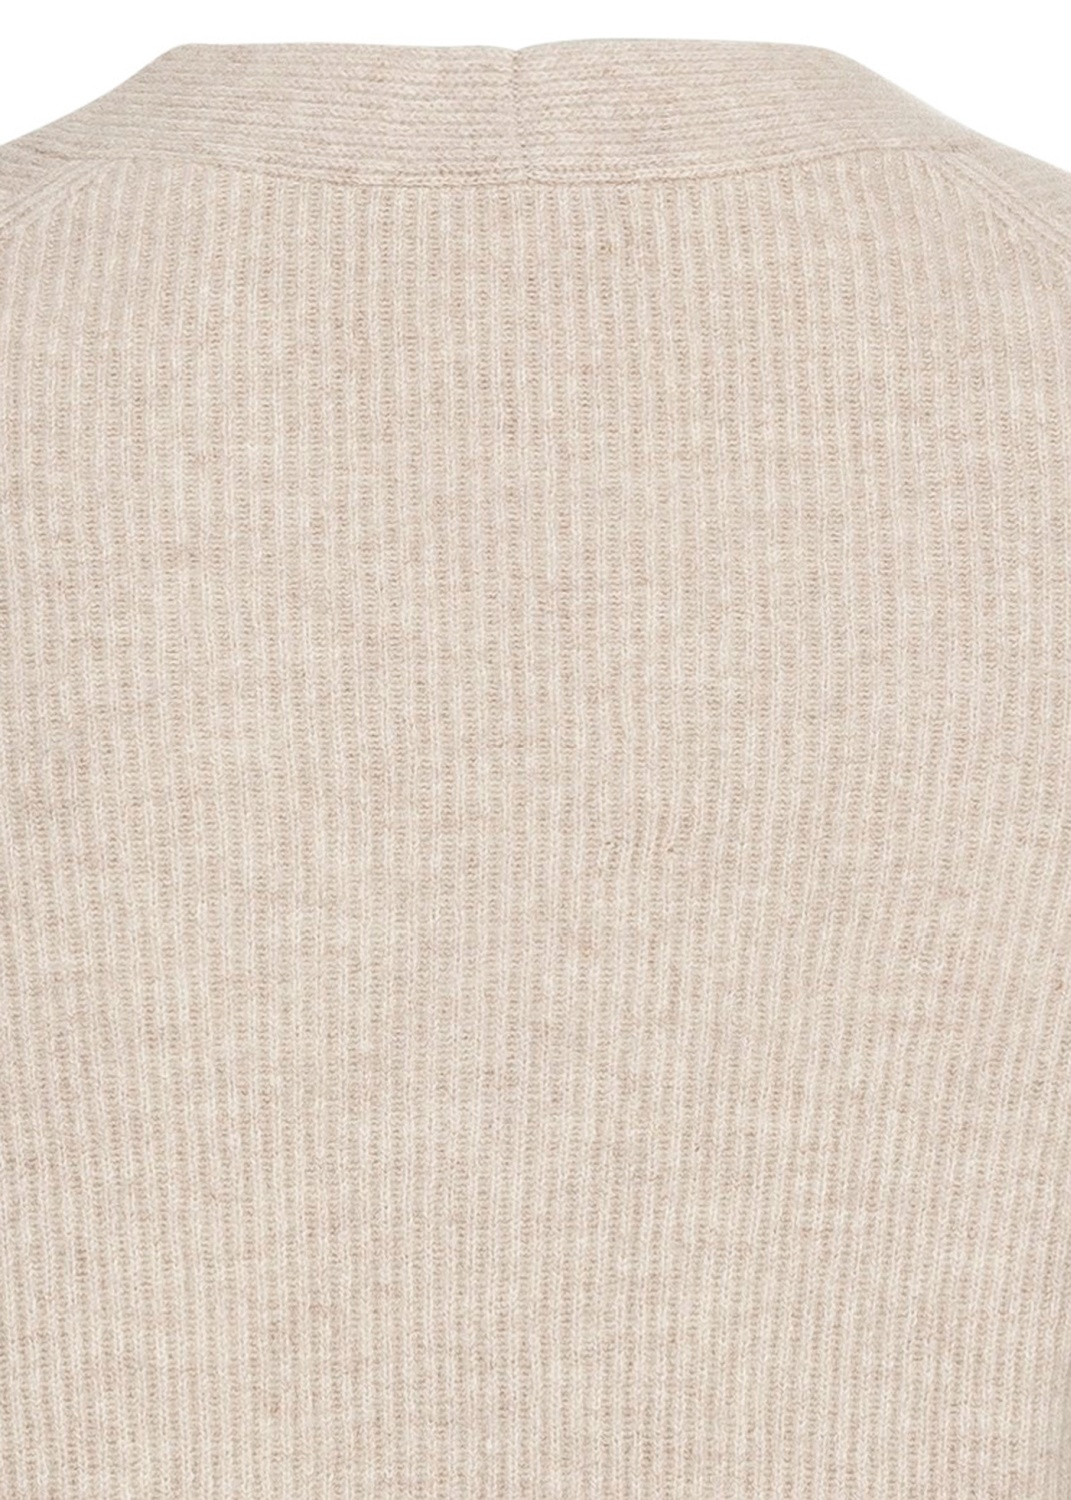 CLEAN RIB TUNIC image number 3